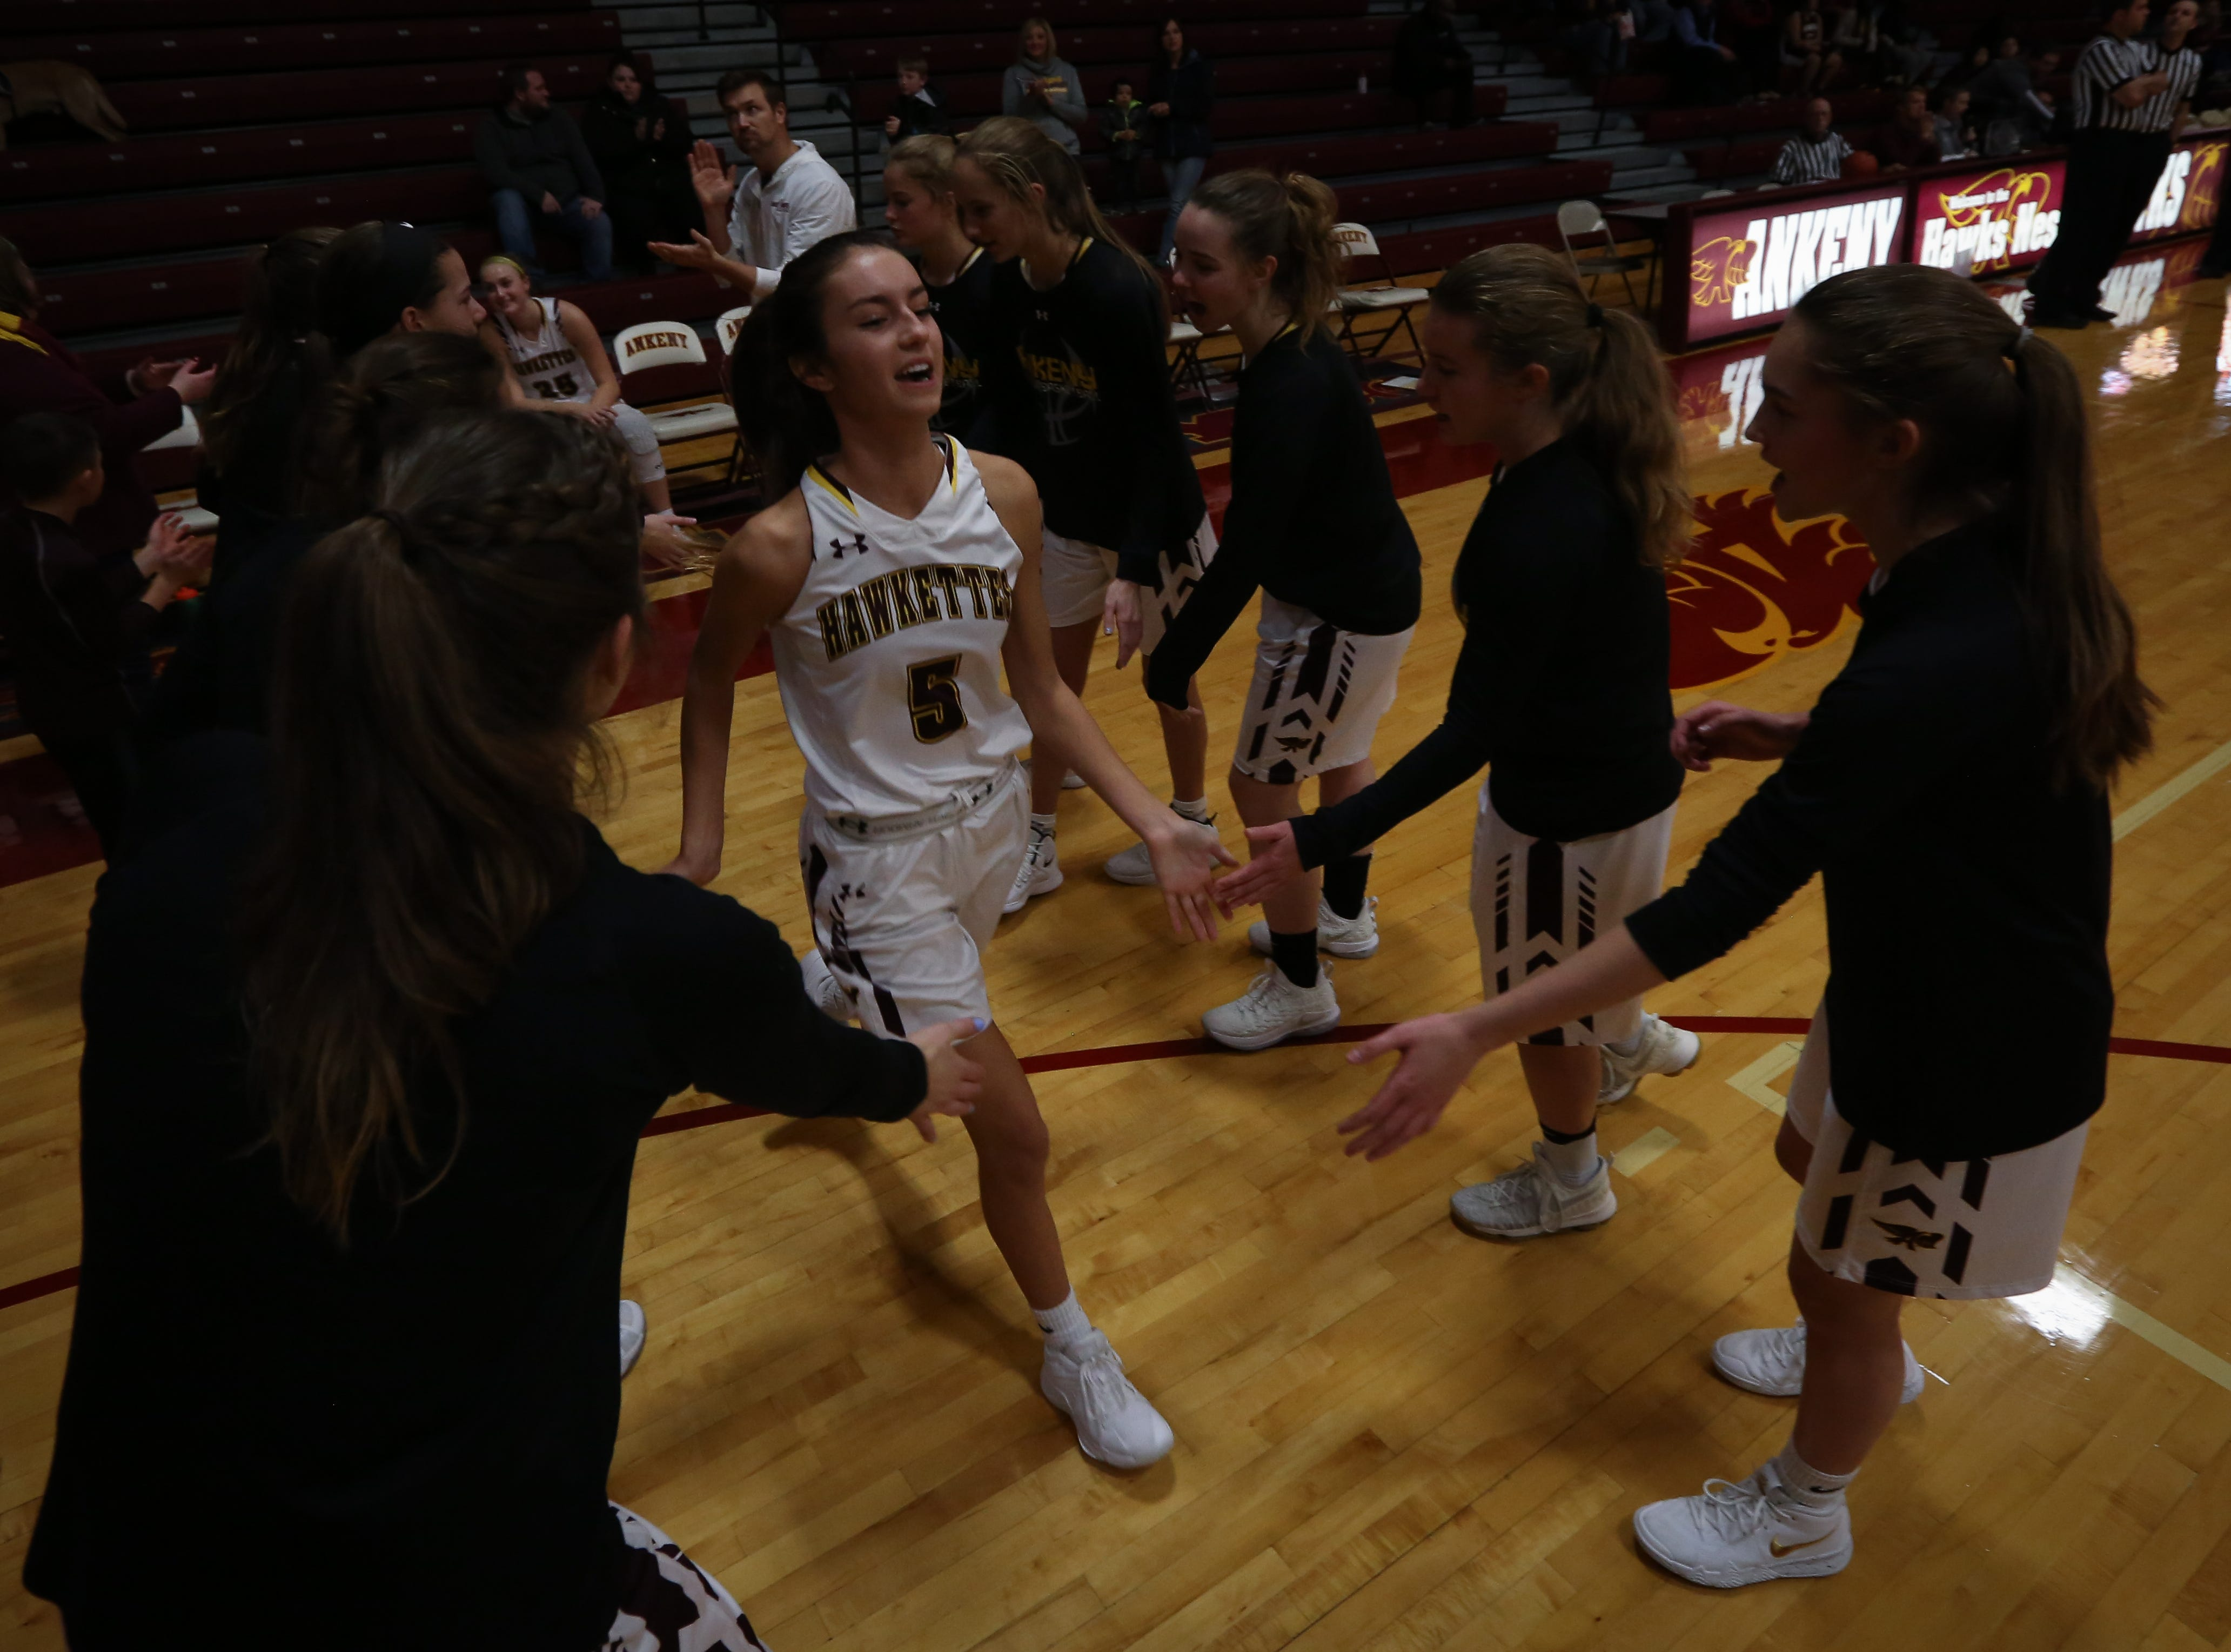 Ankeny junior Kayla Pitz is introduced before a girls high school basketball game between the Lincoln Railsplitters and the Ankeny Hawks at Ankeny High School on Dec. 4, 2018 in Ankeny, Iowa.